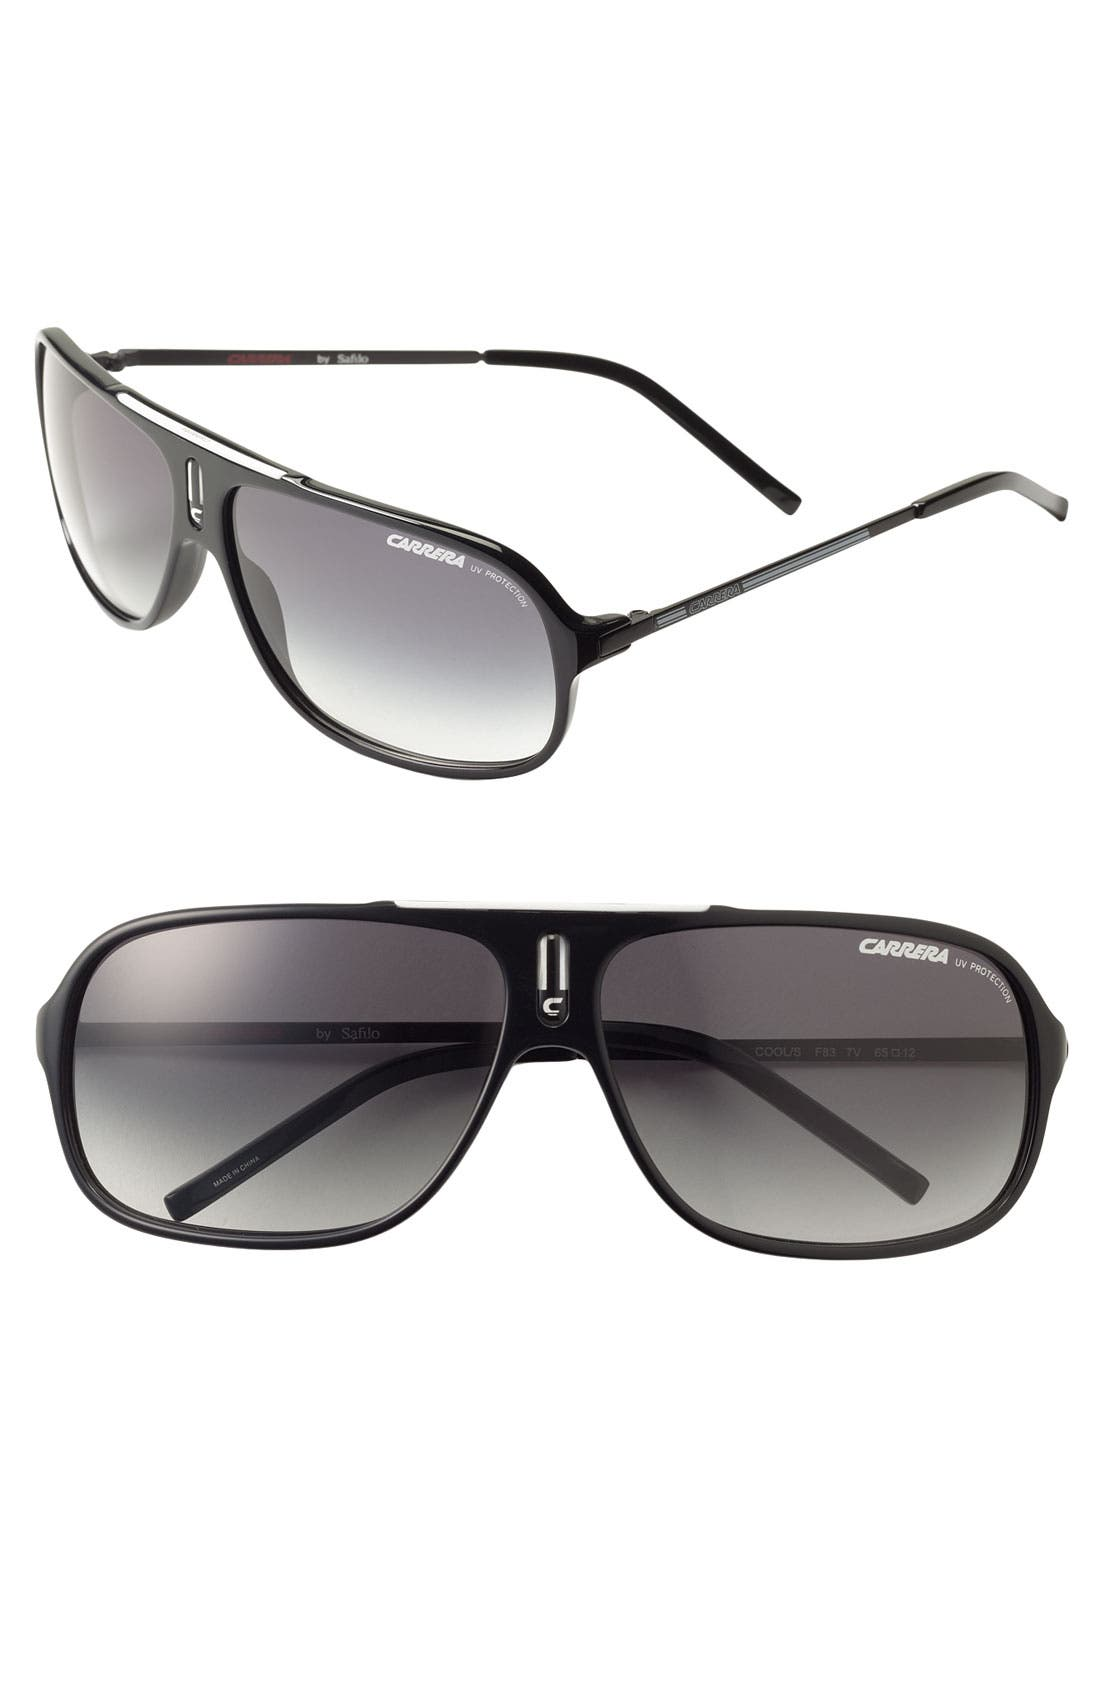 Alternate Image 1 Selected - Carrera Eyewear 'Cool' 65mm Aviator Sunglasses